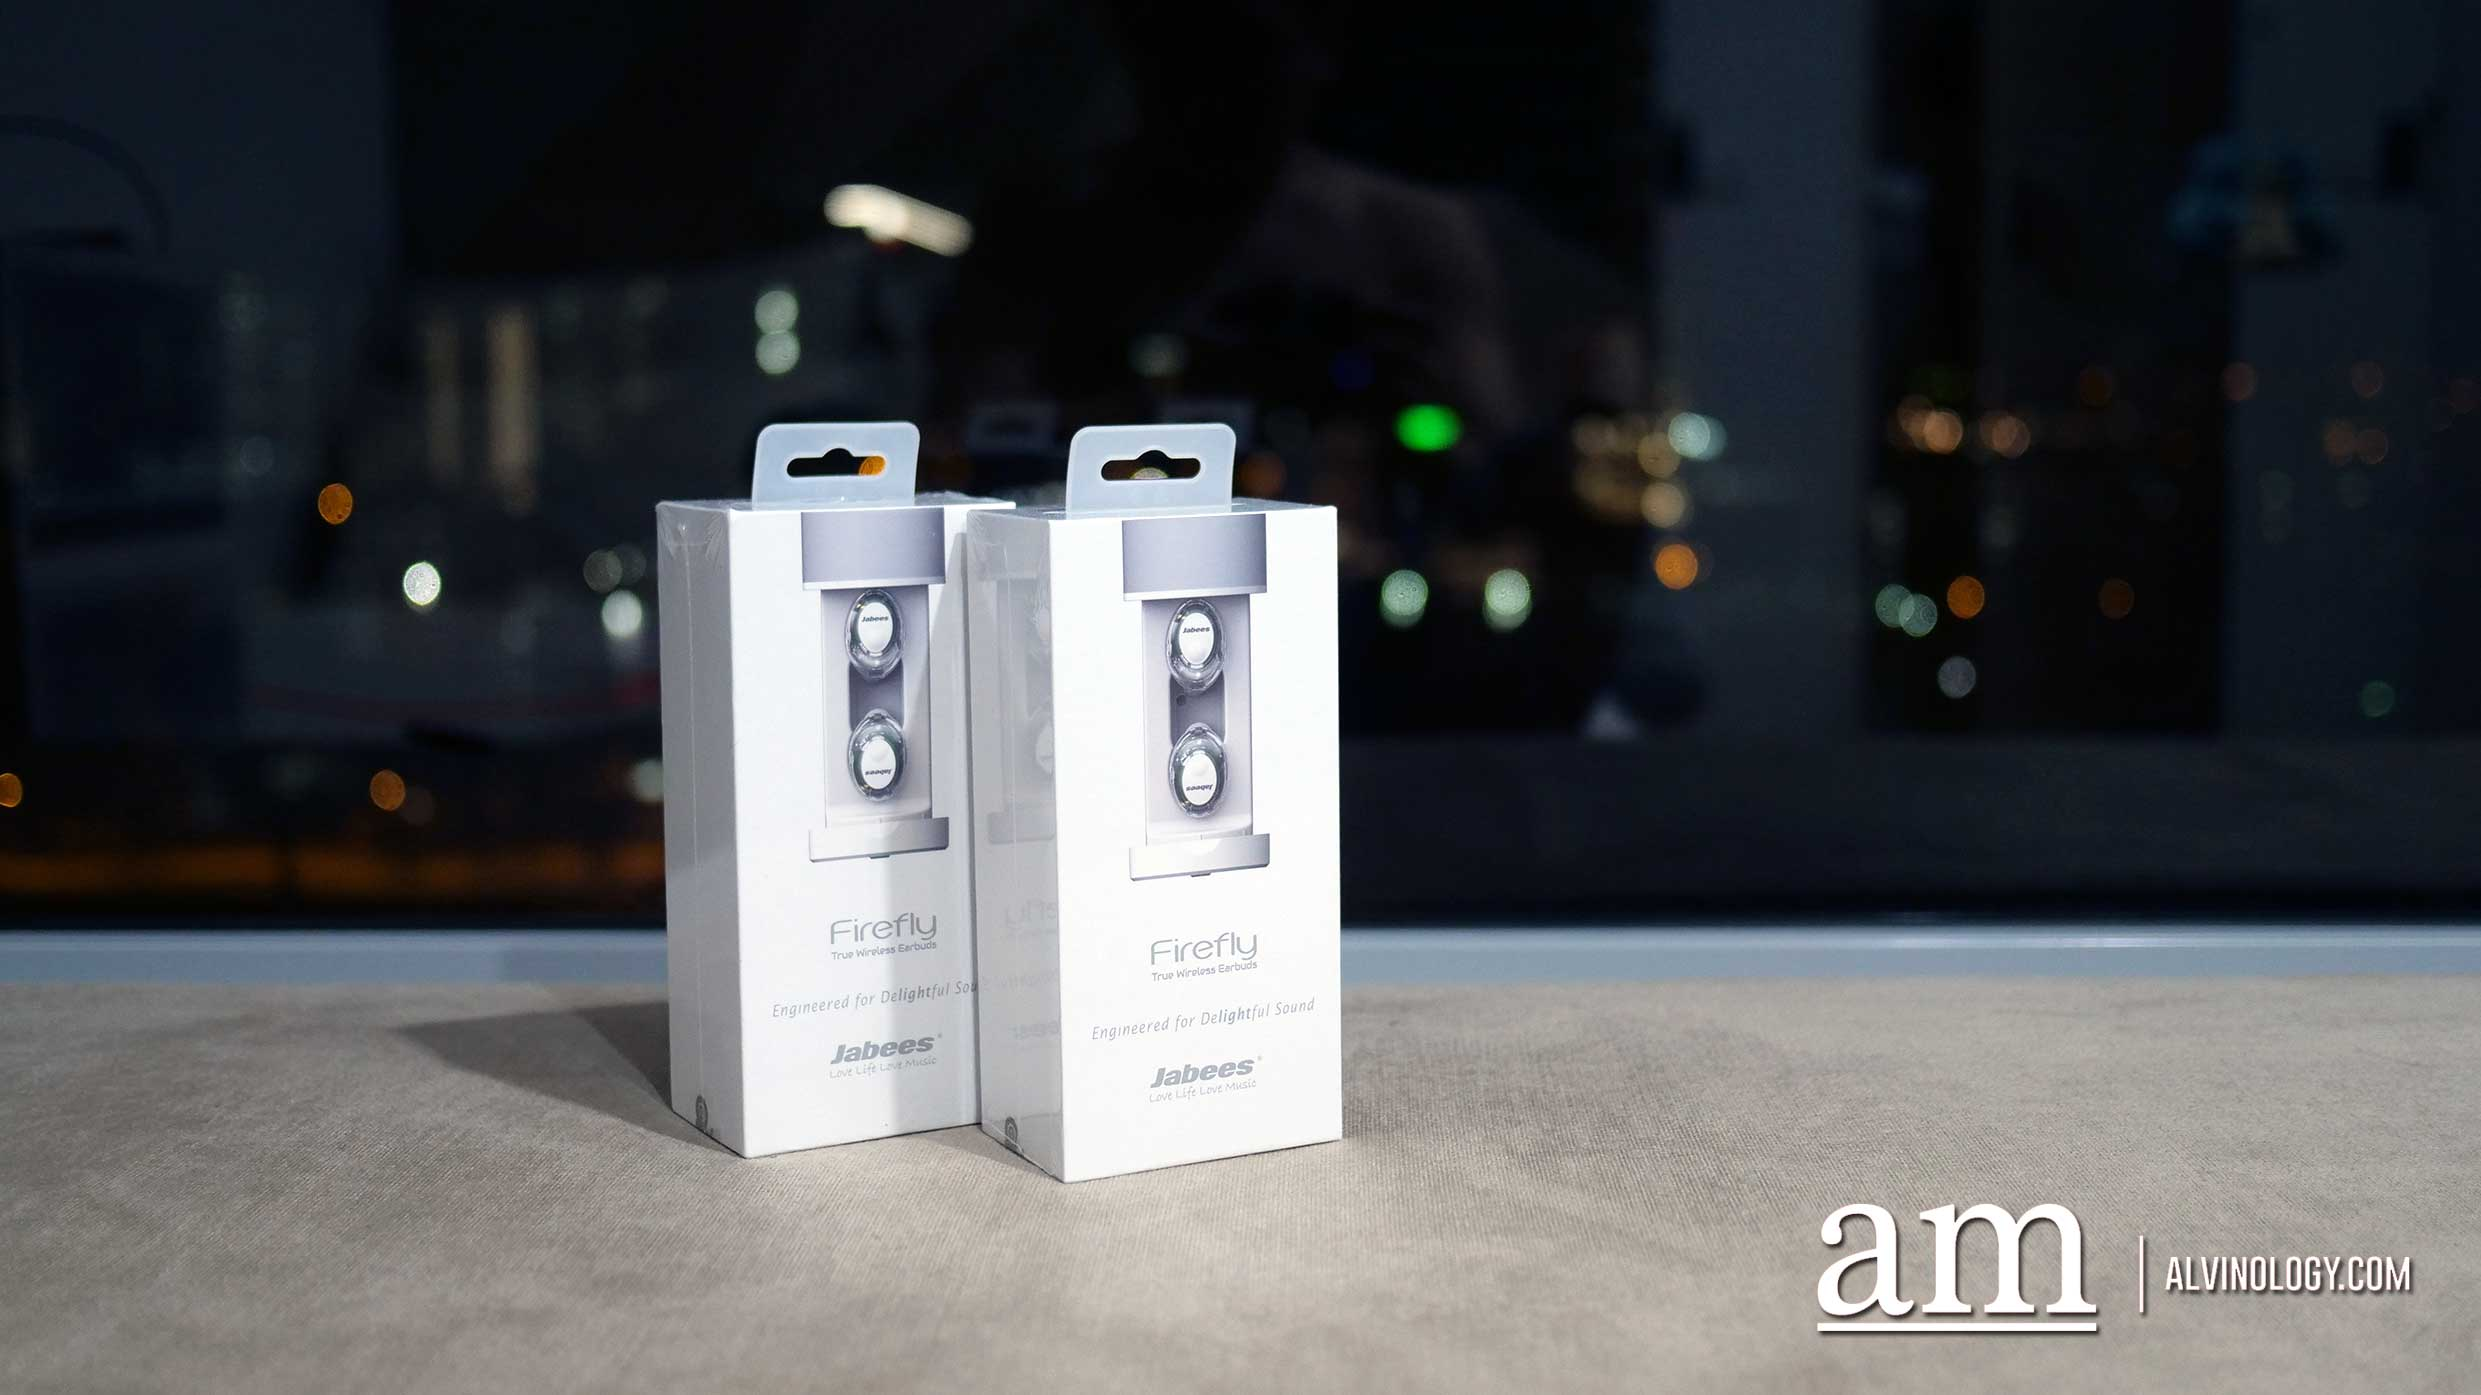 Firefly by Jabees - Glowing Wireless Earphones to Bling Your Workouts - Alvinology